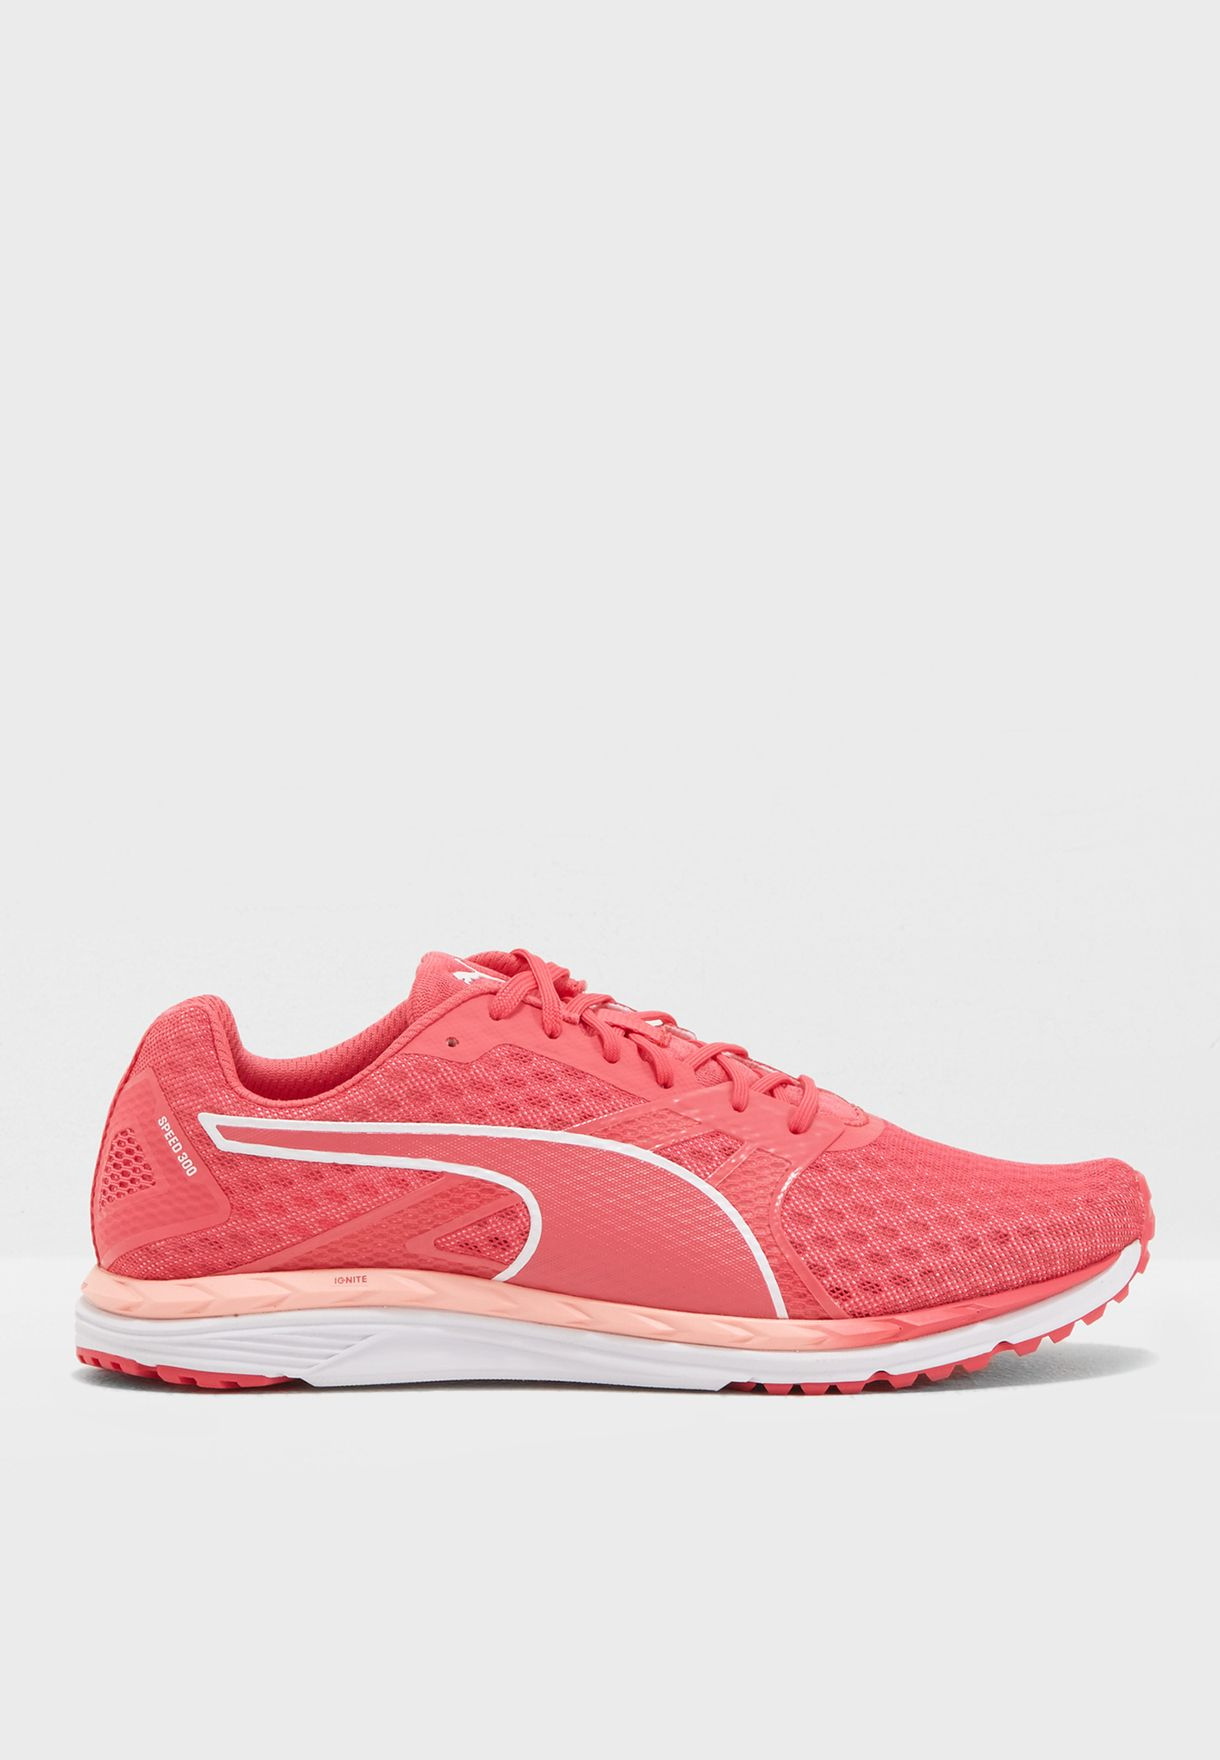 fdc1662a5e8 Shop PUMA pink Speed 300 IGNITE 3 Wn 19091201 for Women in Kuwait -  PU020SH64VMH